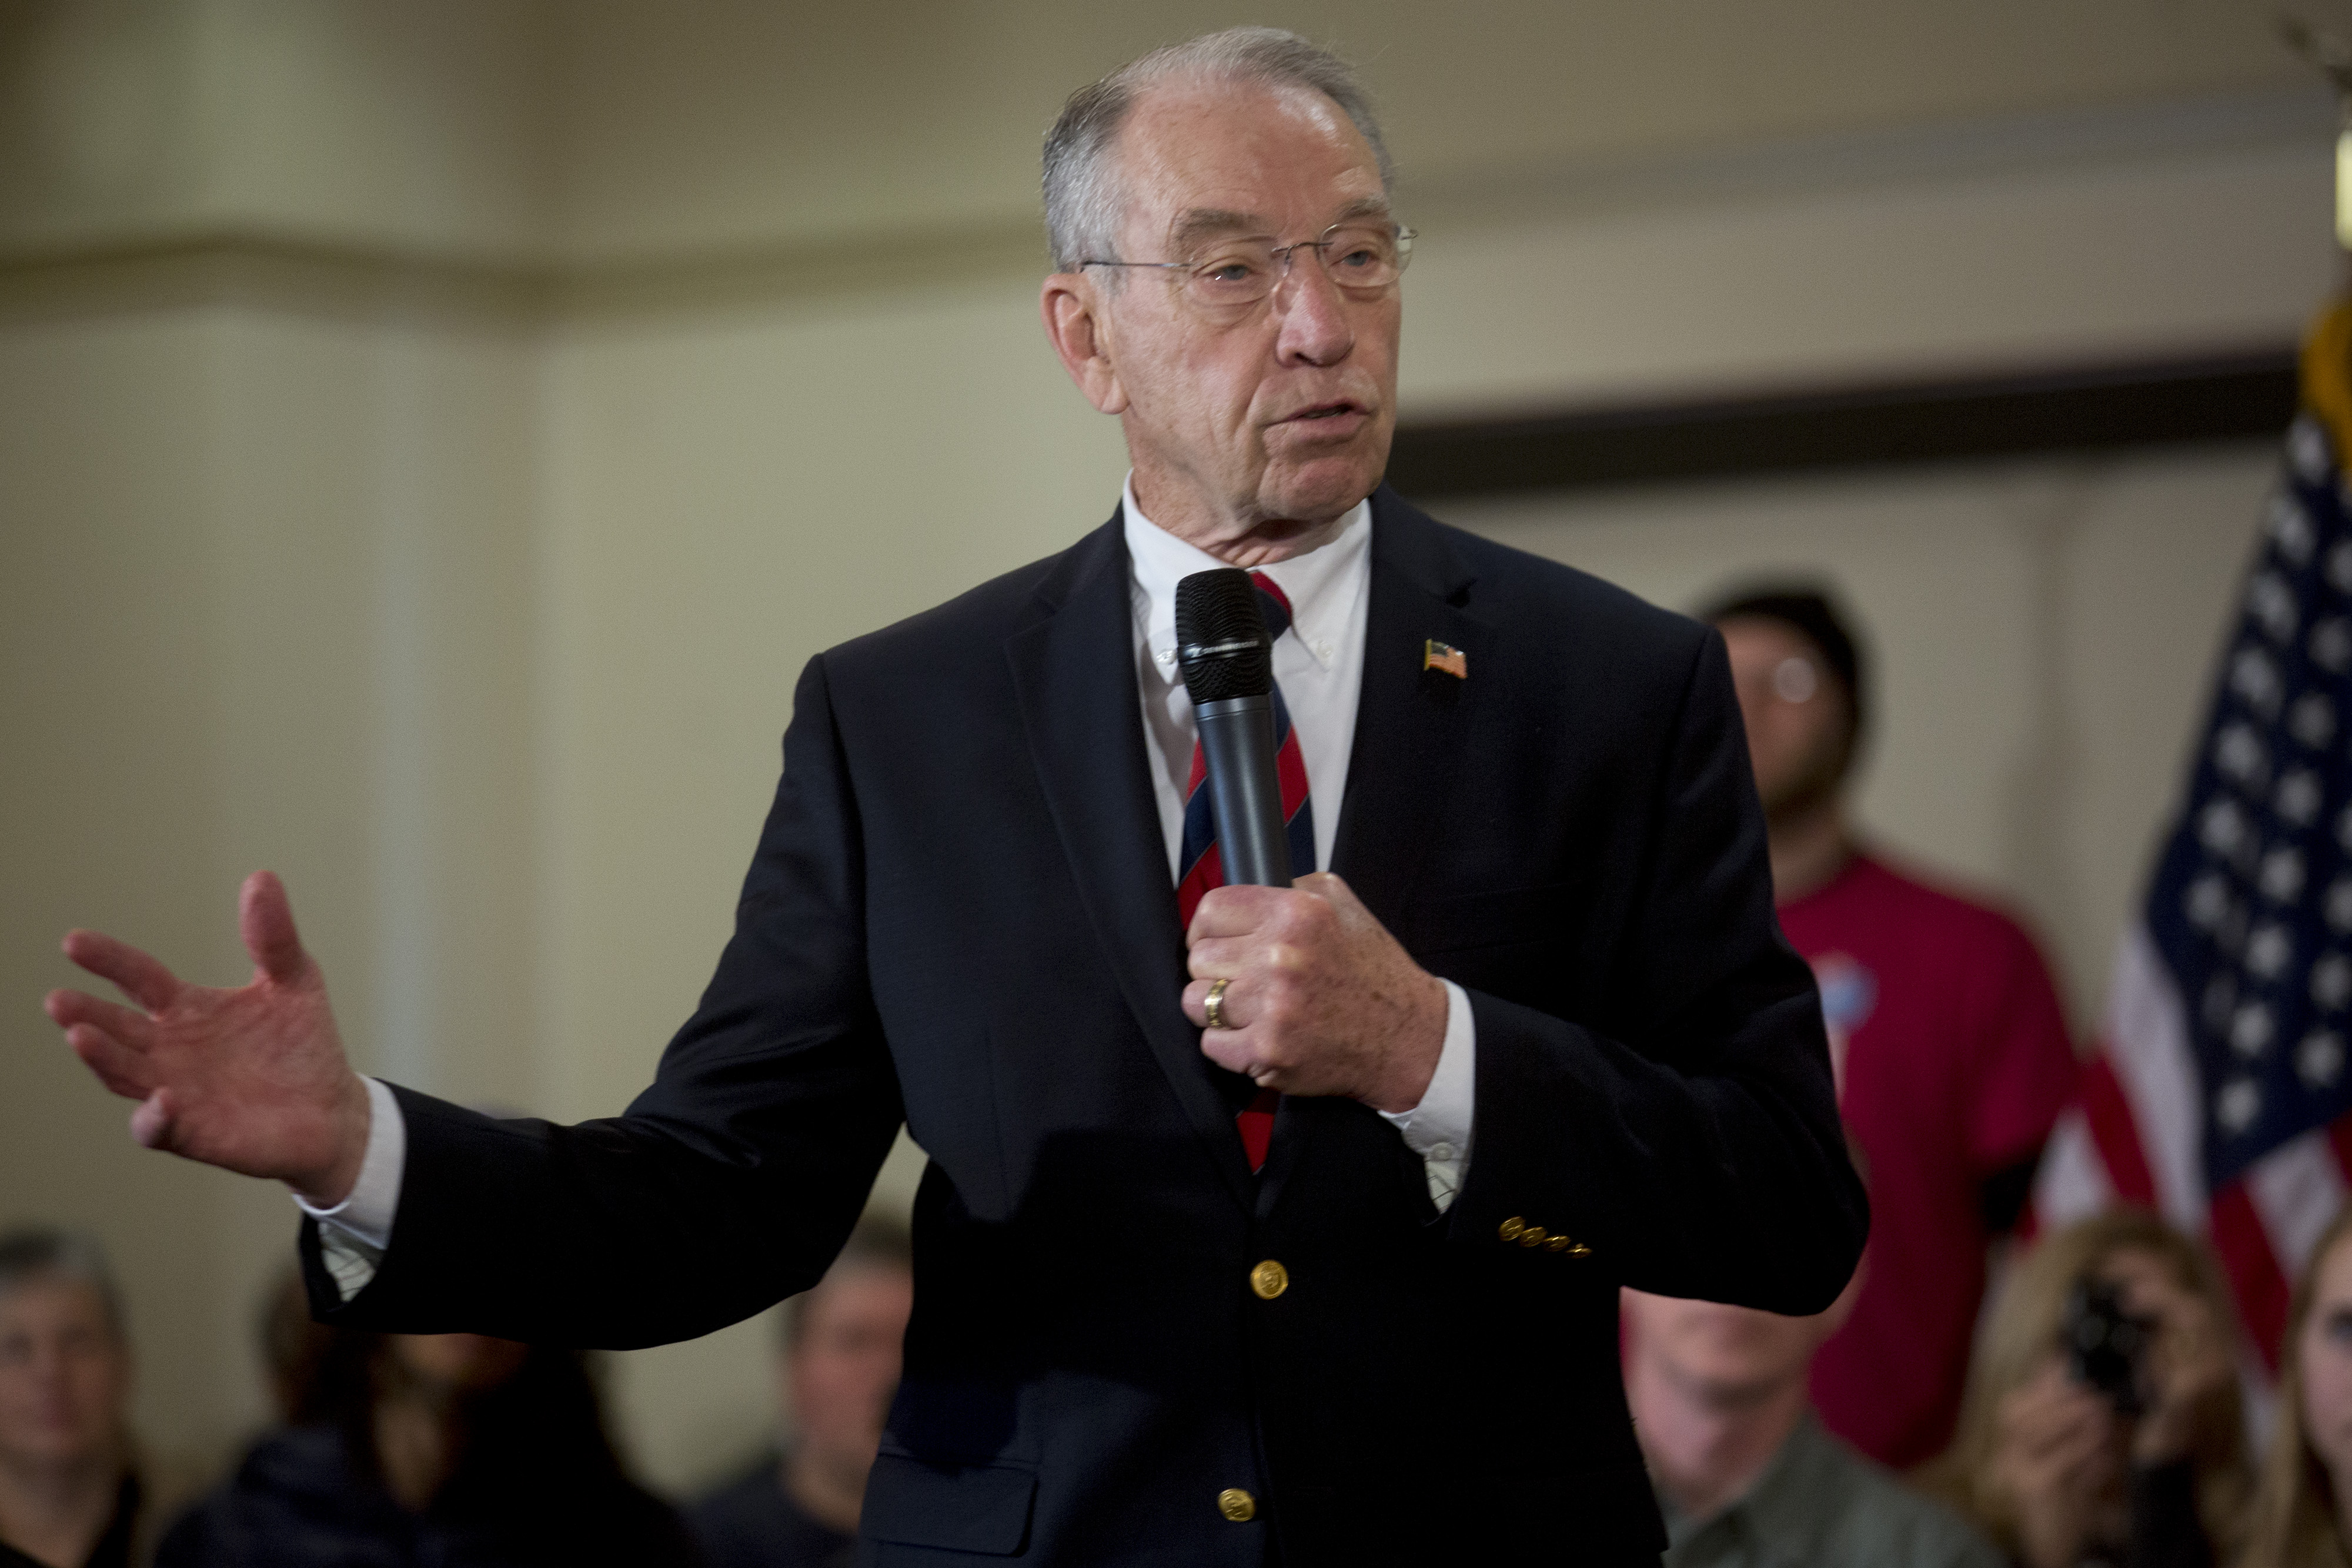 Senator Charles  Chuck  Grassley, a Republican from Iowa, left, speaks while introducing John Kasich, governor of Ohio and 2016 Republican presidential candidate, not pictured, during a town hall meeting at the National Czech and Slovak Museum and Library in Cedar Rapids, Iowa, U.S., on Friday, Jan. 29, 2016.